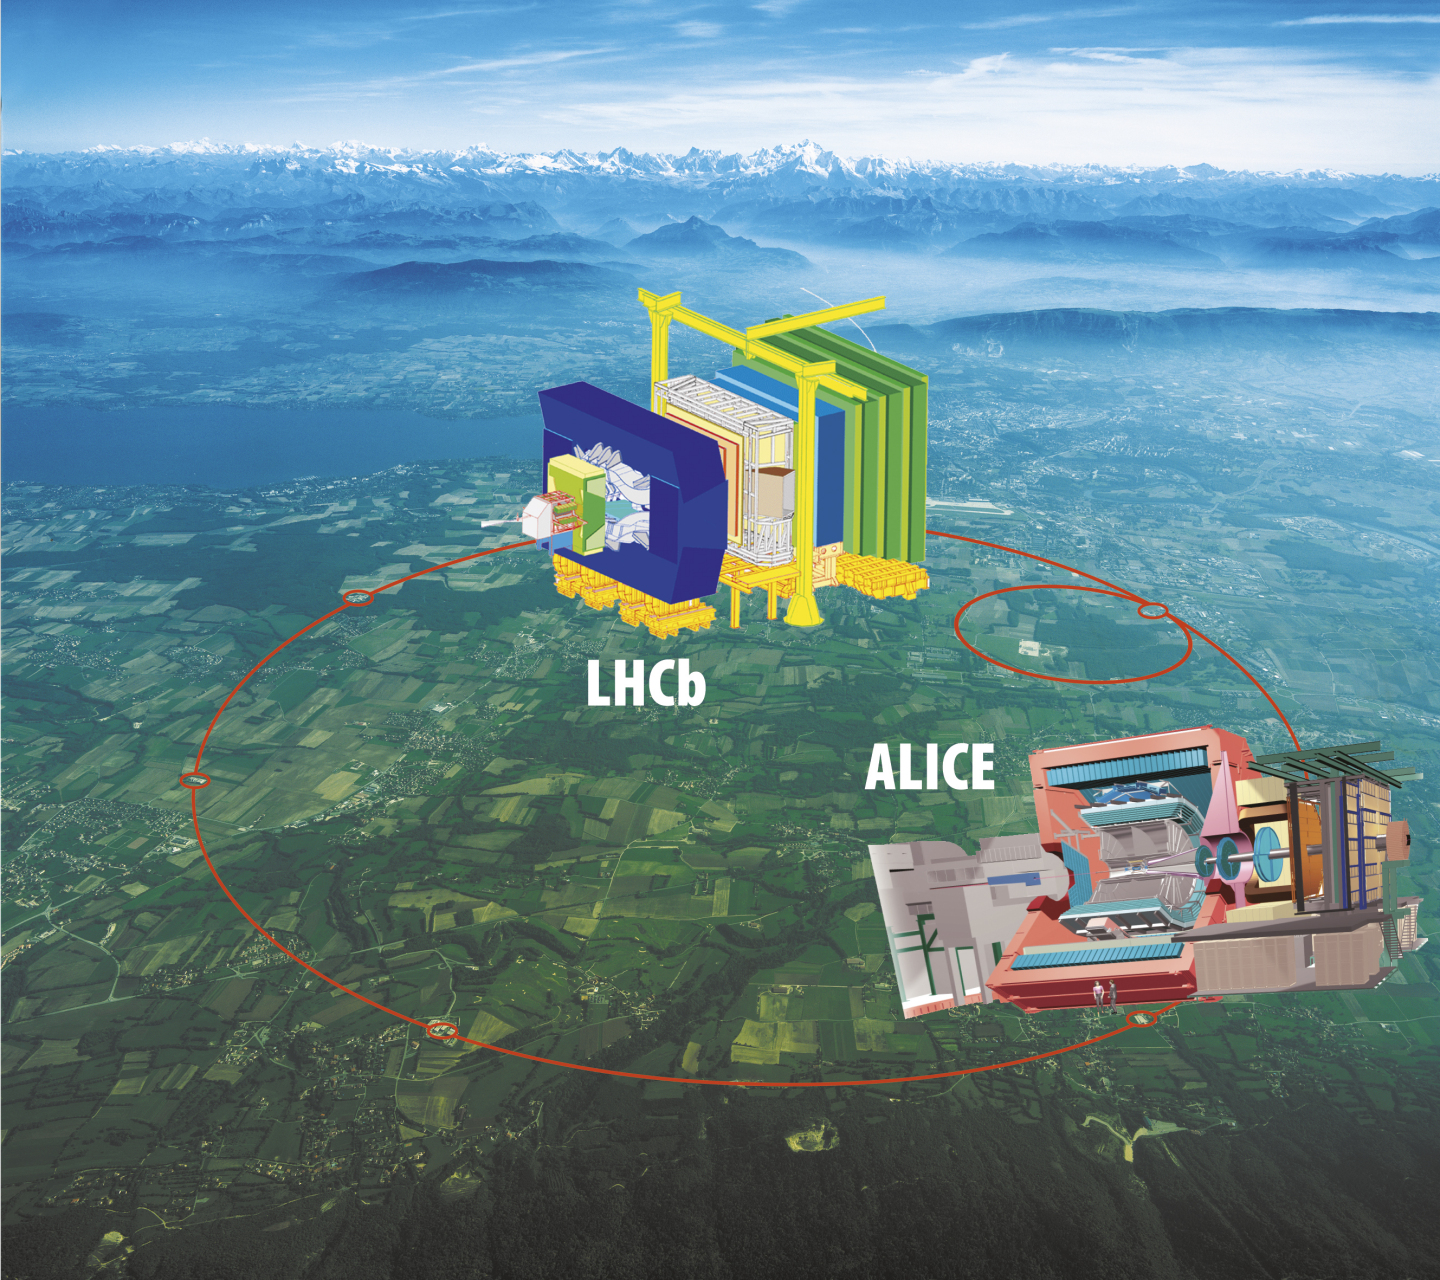 LHC experiments: ALICE and LHCb